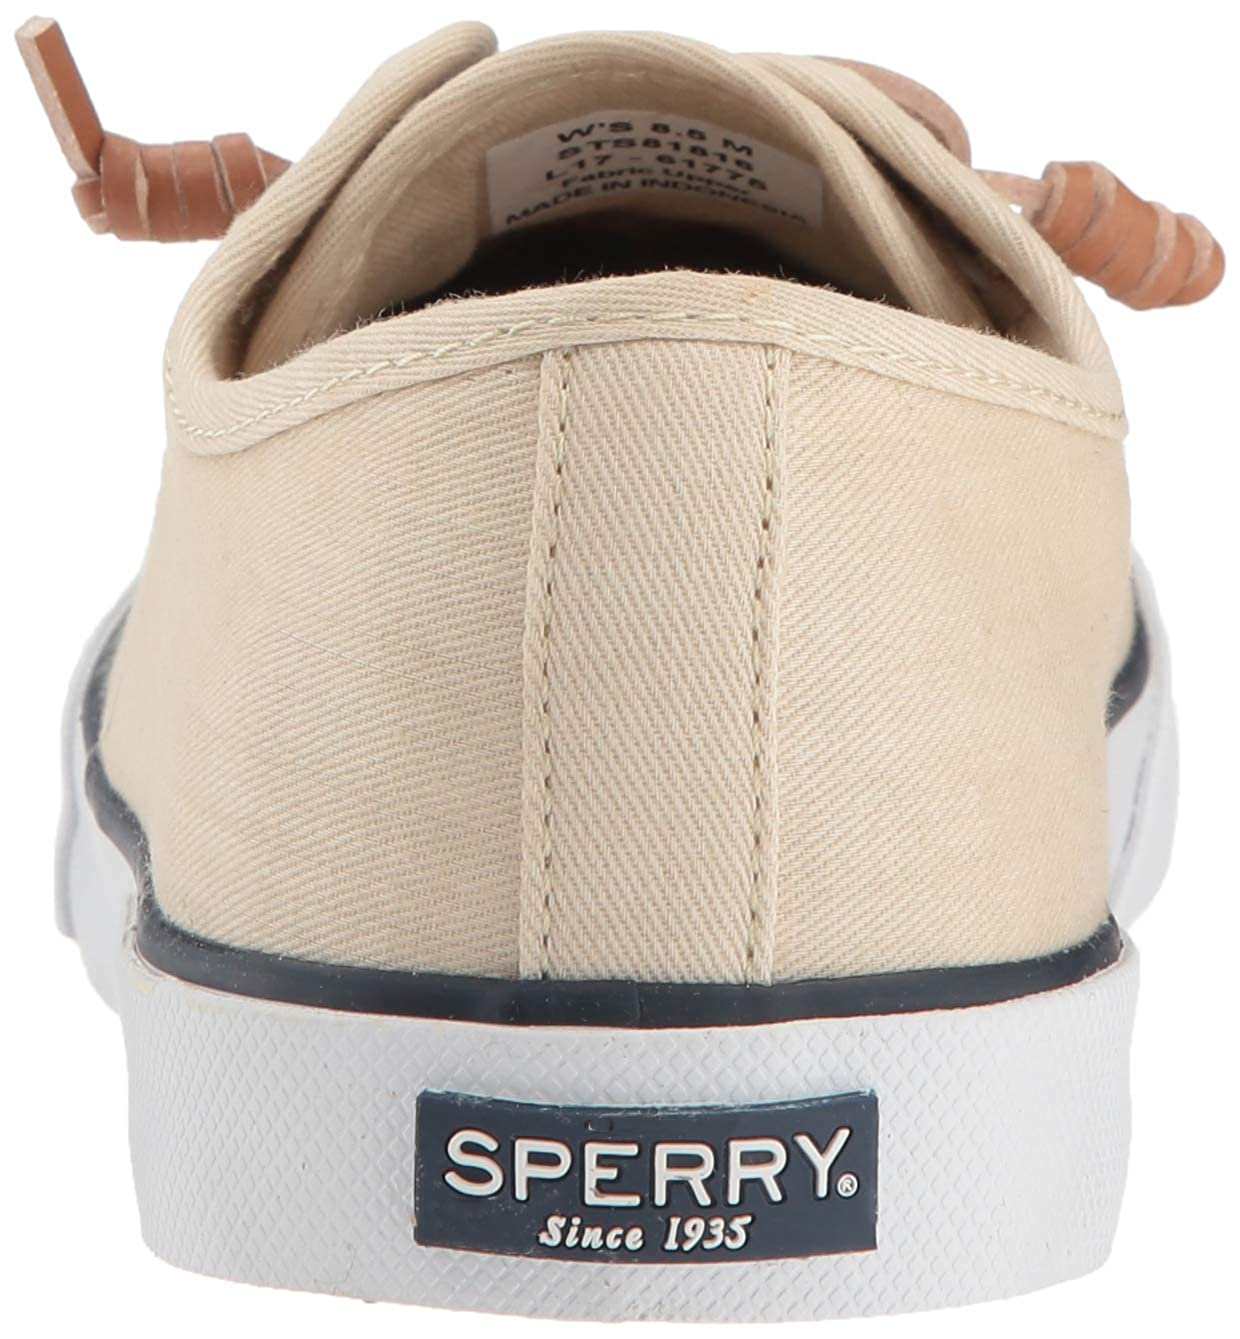 Sperry Womens Pier View Shoes